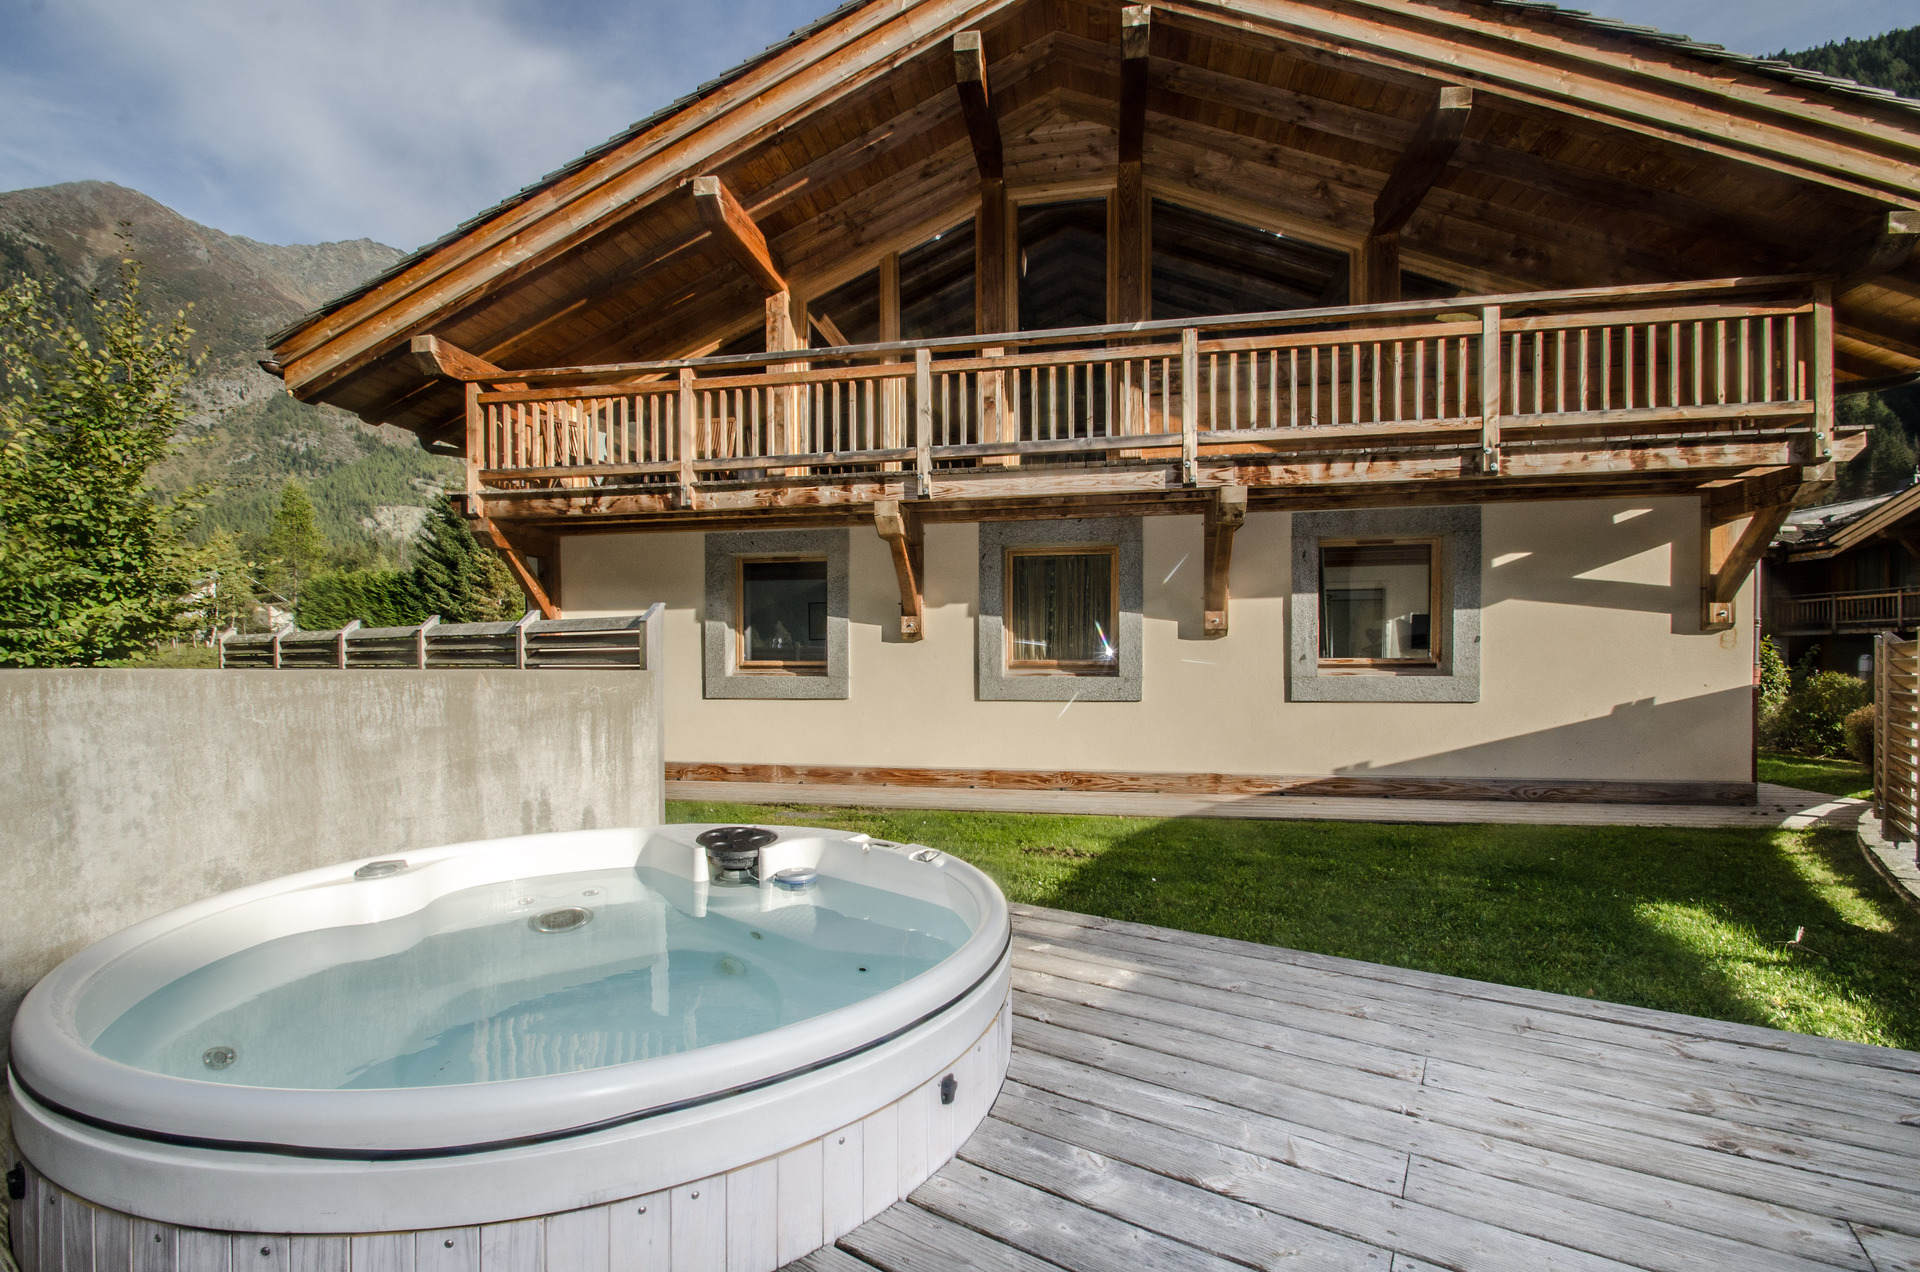 Chalet Gaia - outdoor jacuzzi